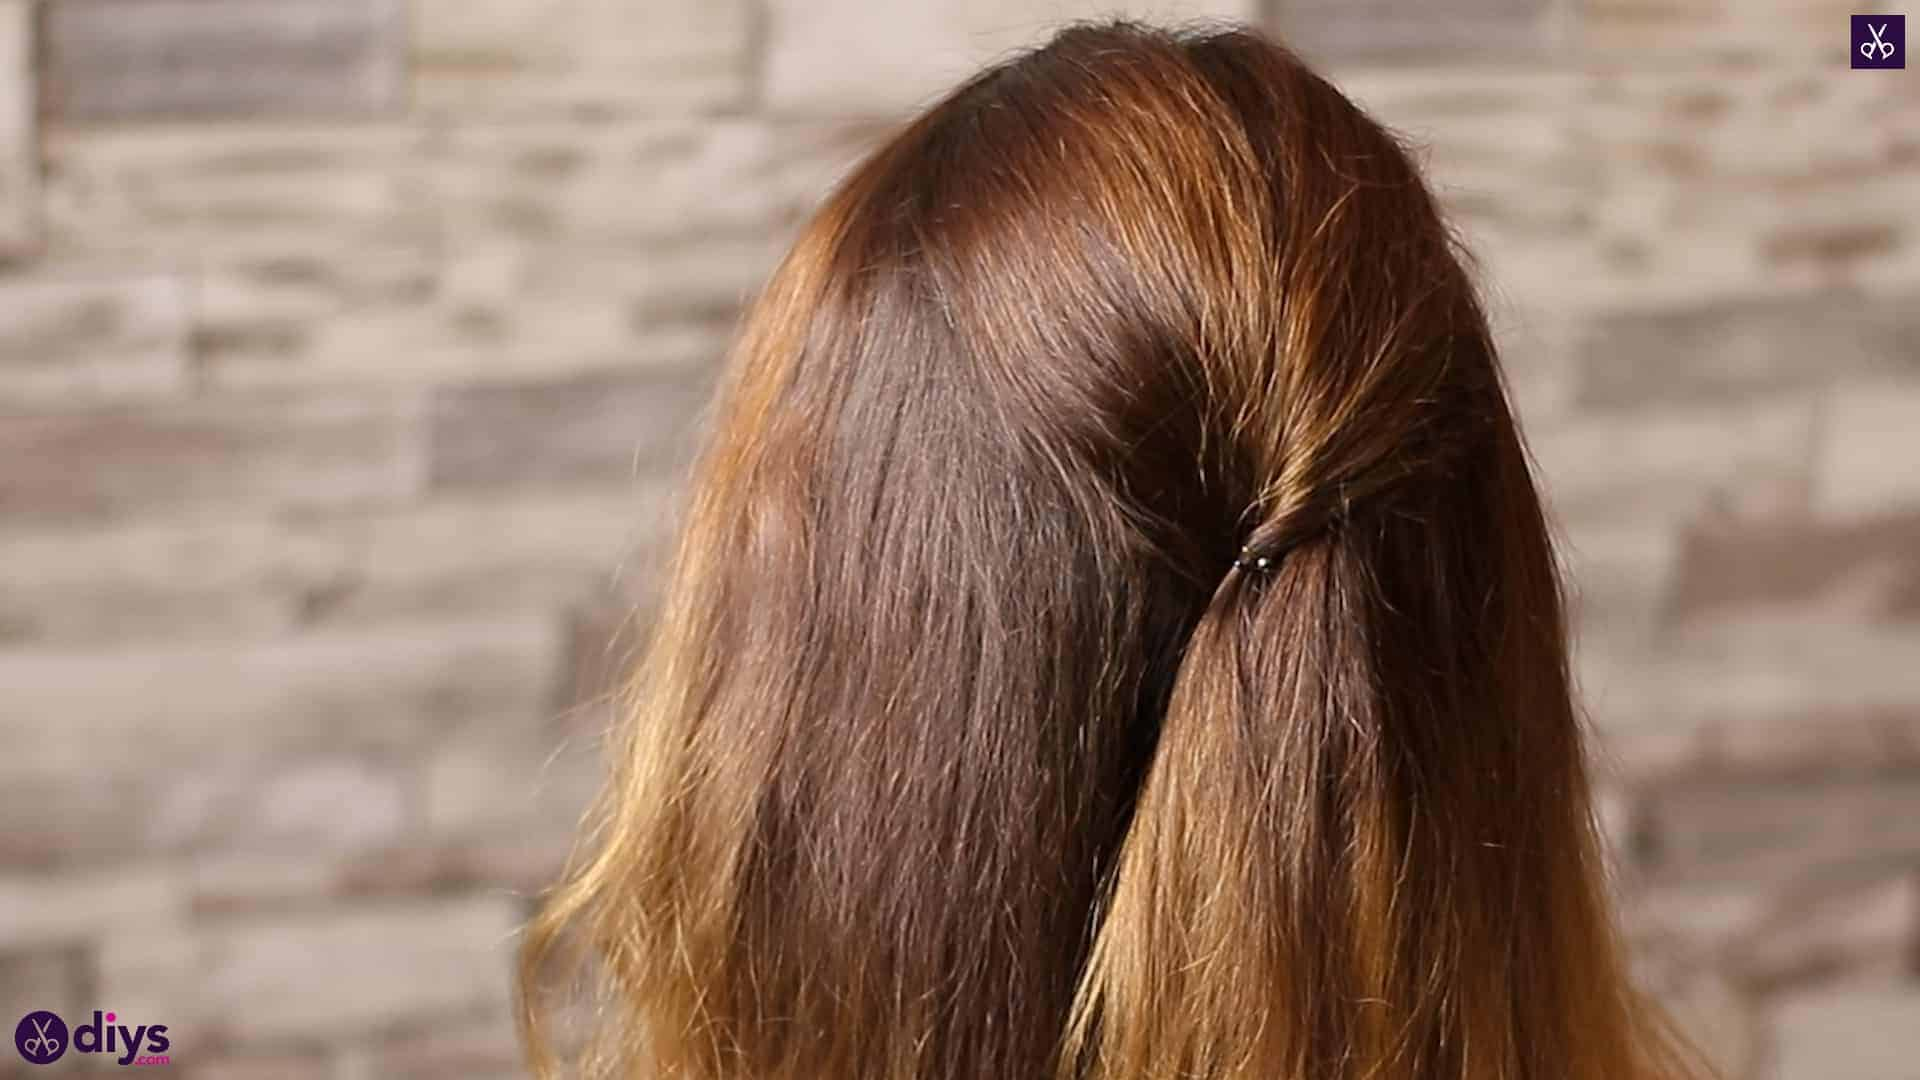 Updo hairstyle for wavy hair 26